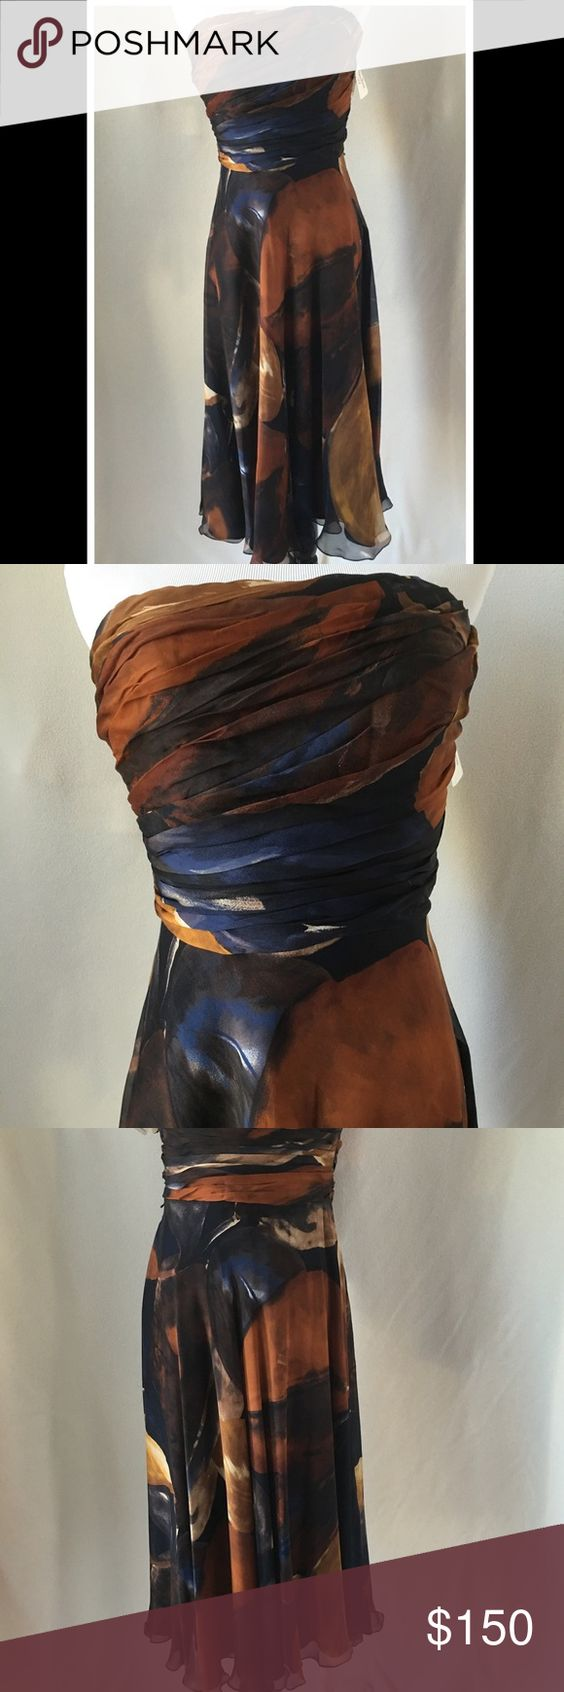 NWT Neiman Marcus Dress Brand new with tags from Neiman Marcus. It's a beautiful strapless dress with lovely fall colors. Neiman Marcus Dresses Strapless